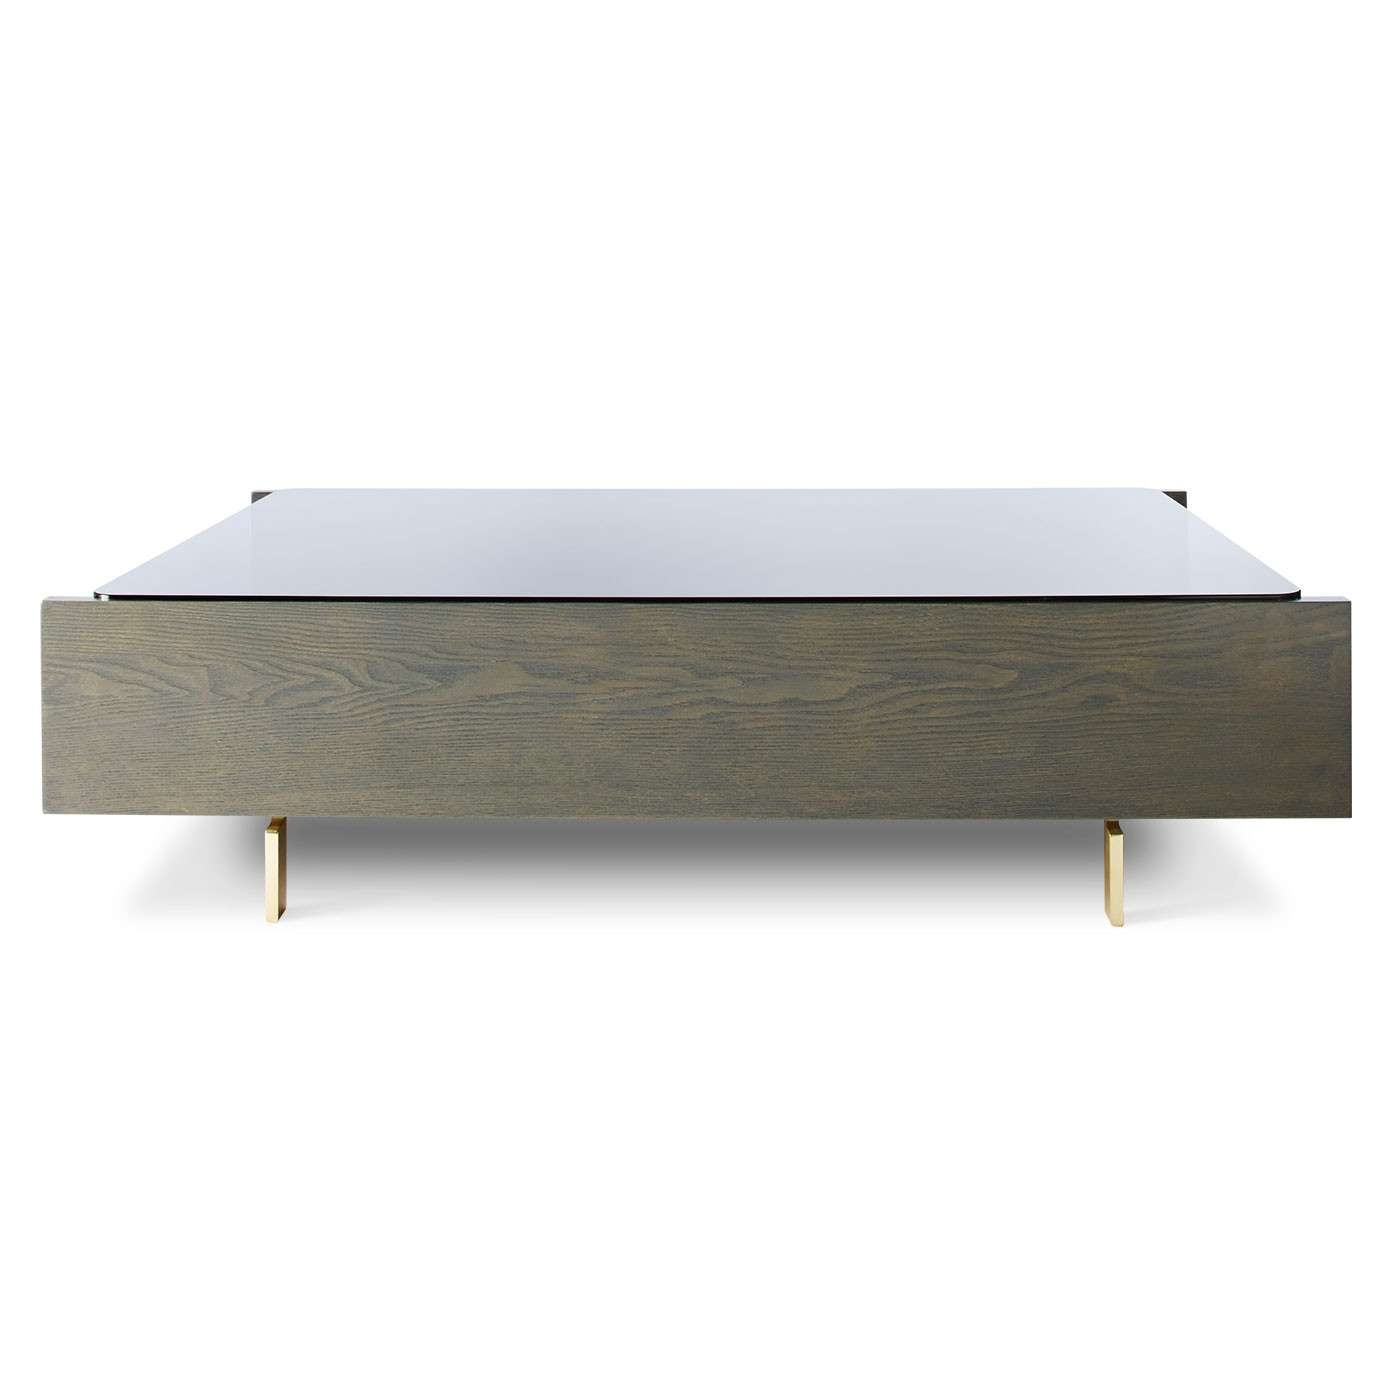 Belham Living Carter Mid Century Modern Coffee Table Tables At Pertaining To Widely Used Large Contemporary Coffee Tables (View 2 of 20)